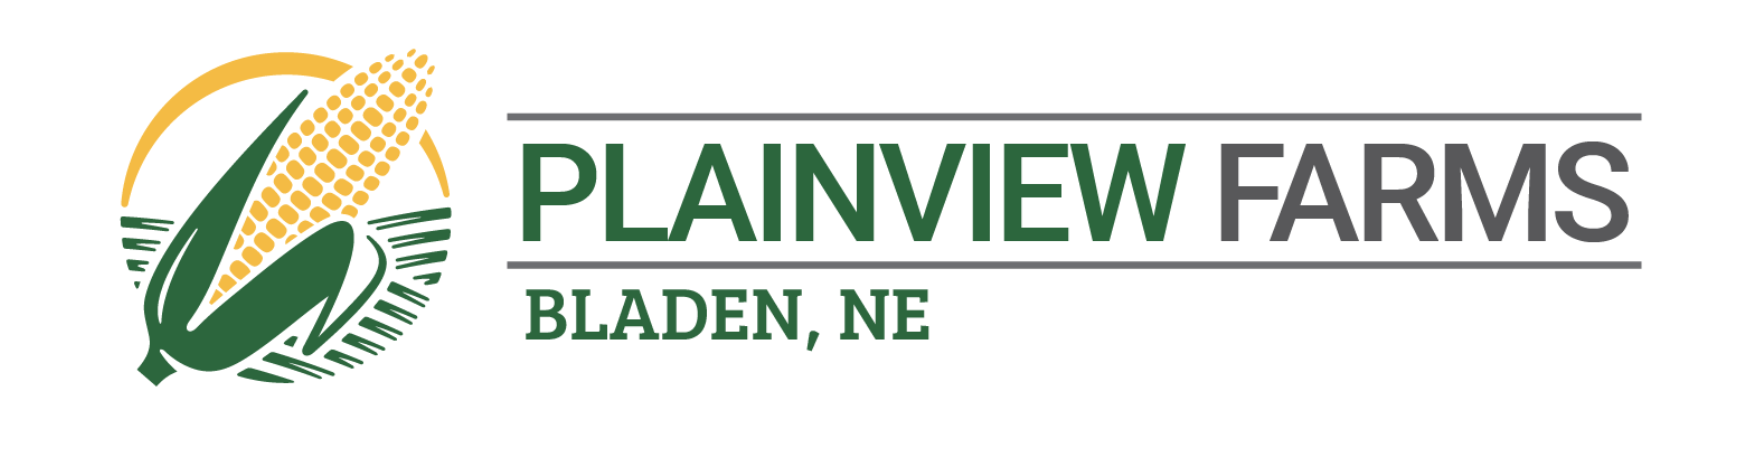 Helping Give Plainview Farms the Look They Always Wanted